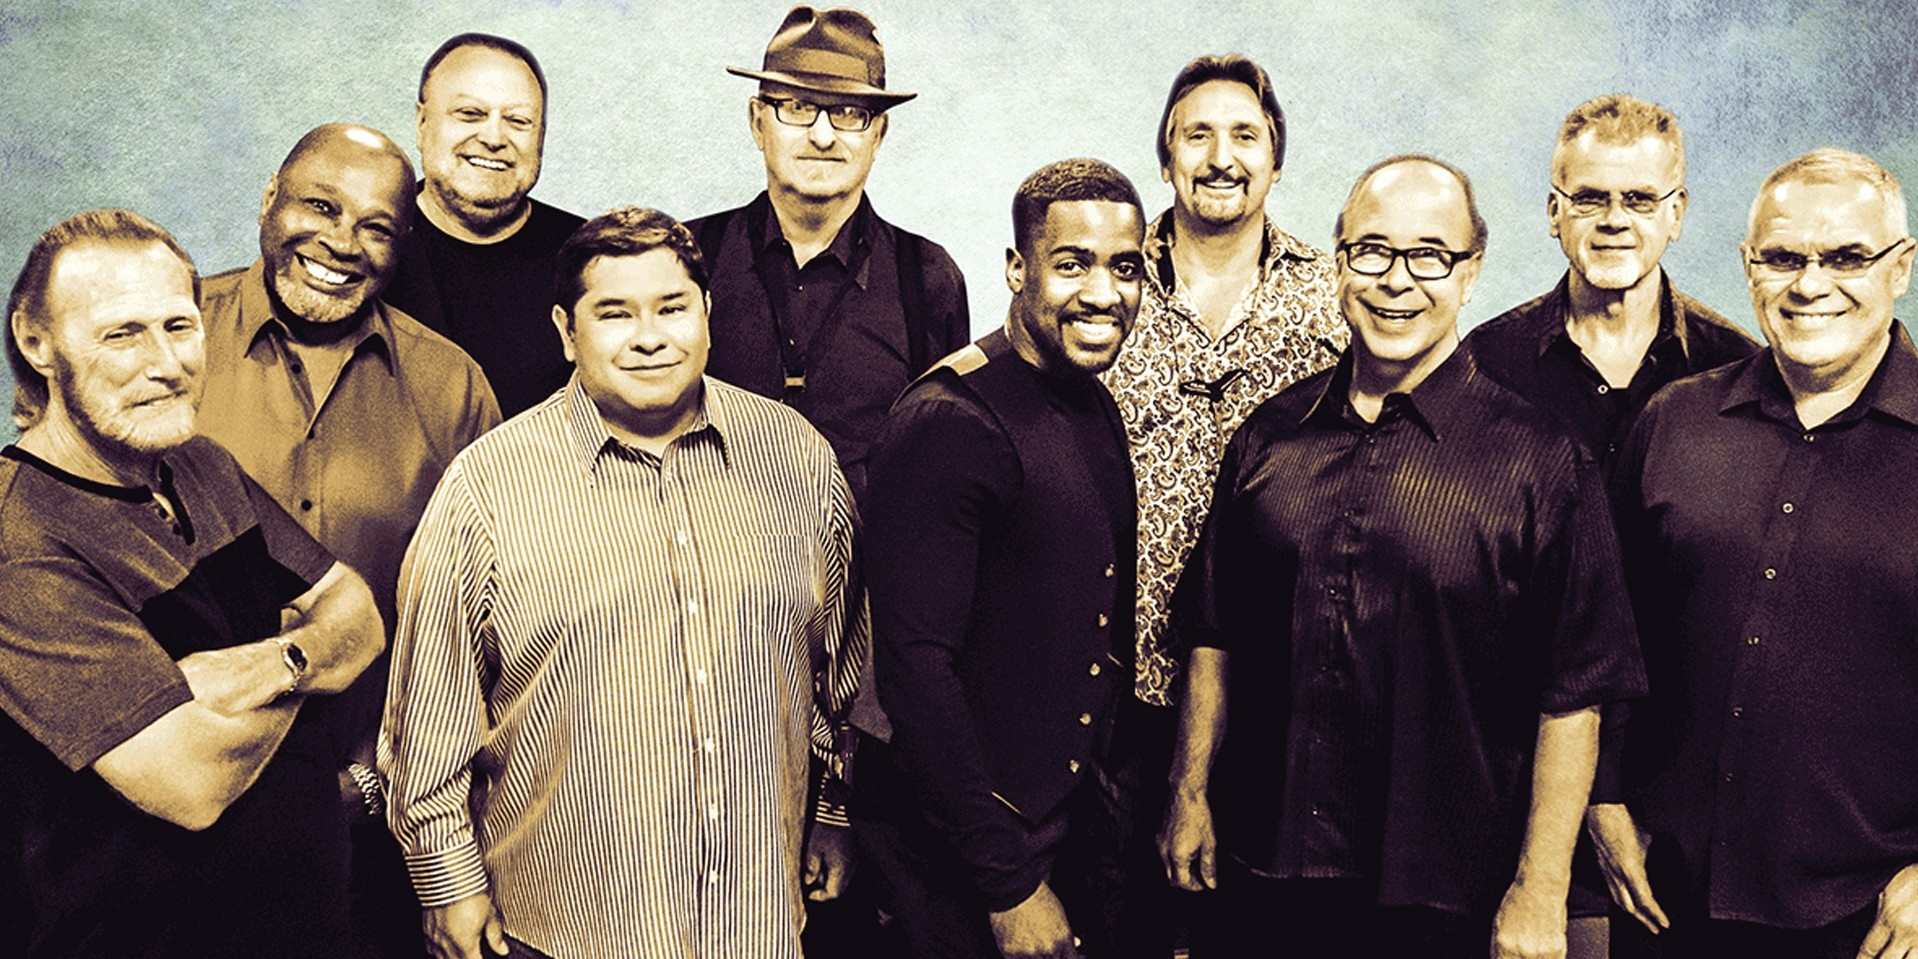 Tower of Power, Dennis Lambert, Kalapana to perform in one-night Manila concert